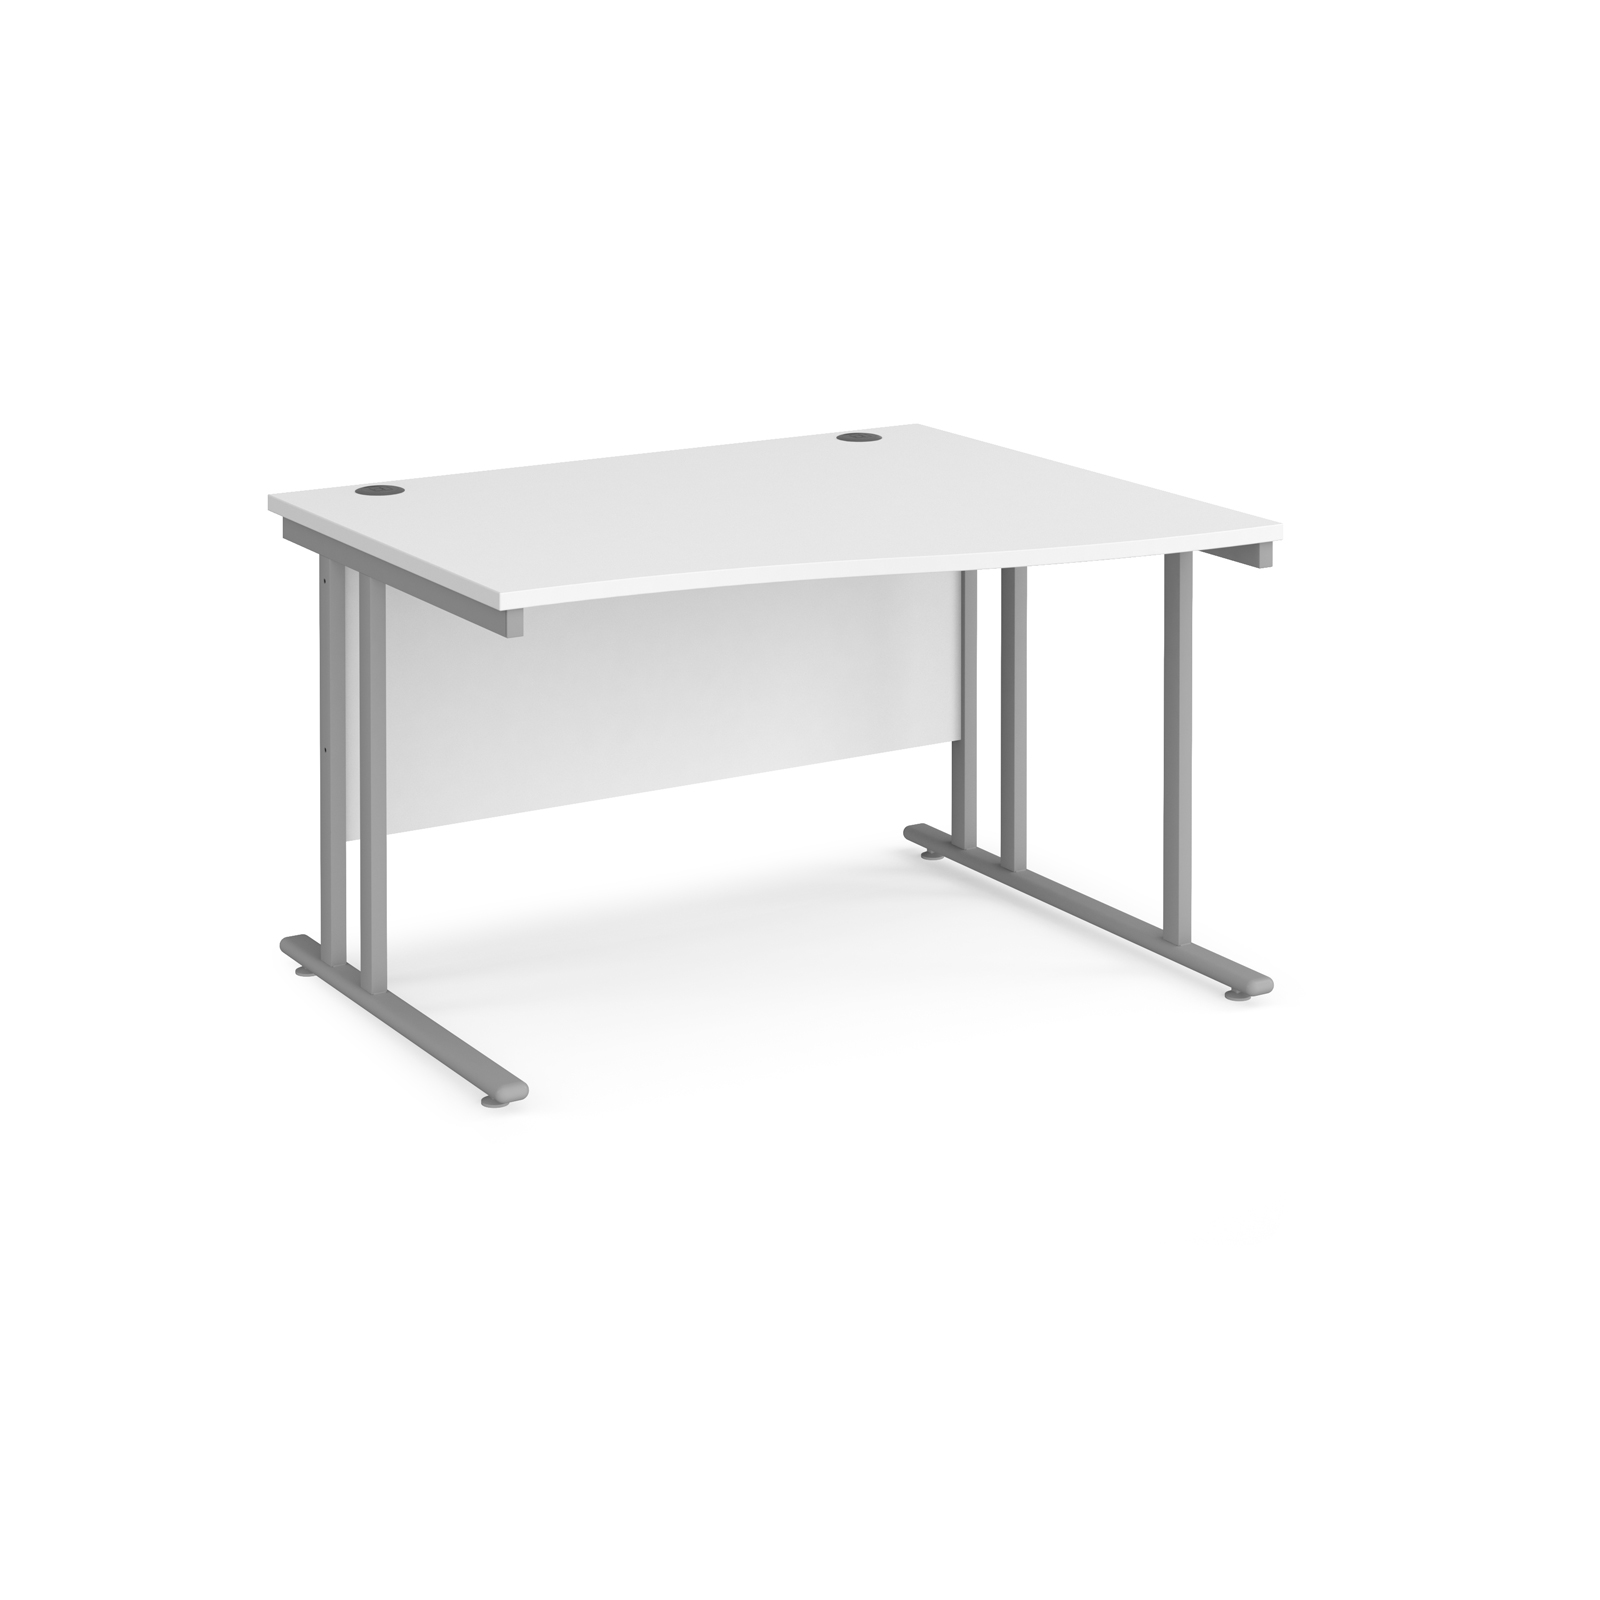 Right Handed Maestro 25 right hand wave desk 1200mm wide - silver cantilever leg frame, white top